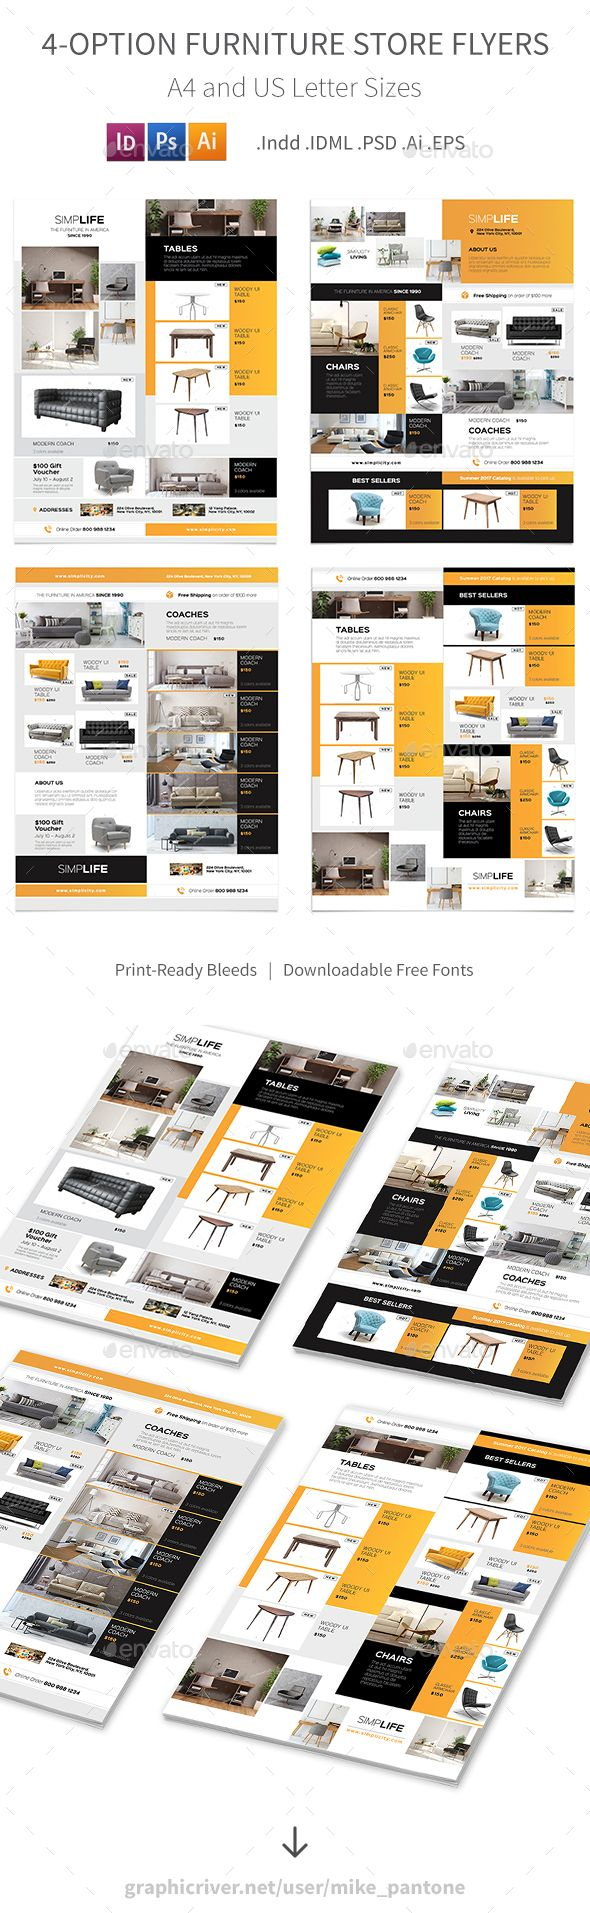 Furniture Store Flyers 3 – 4 Options